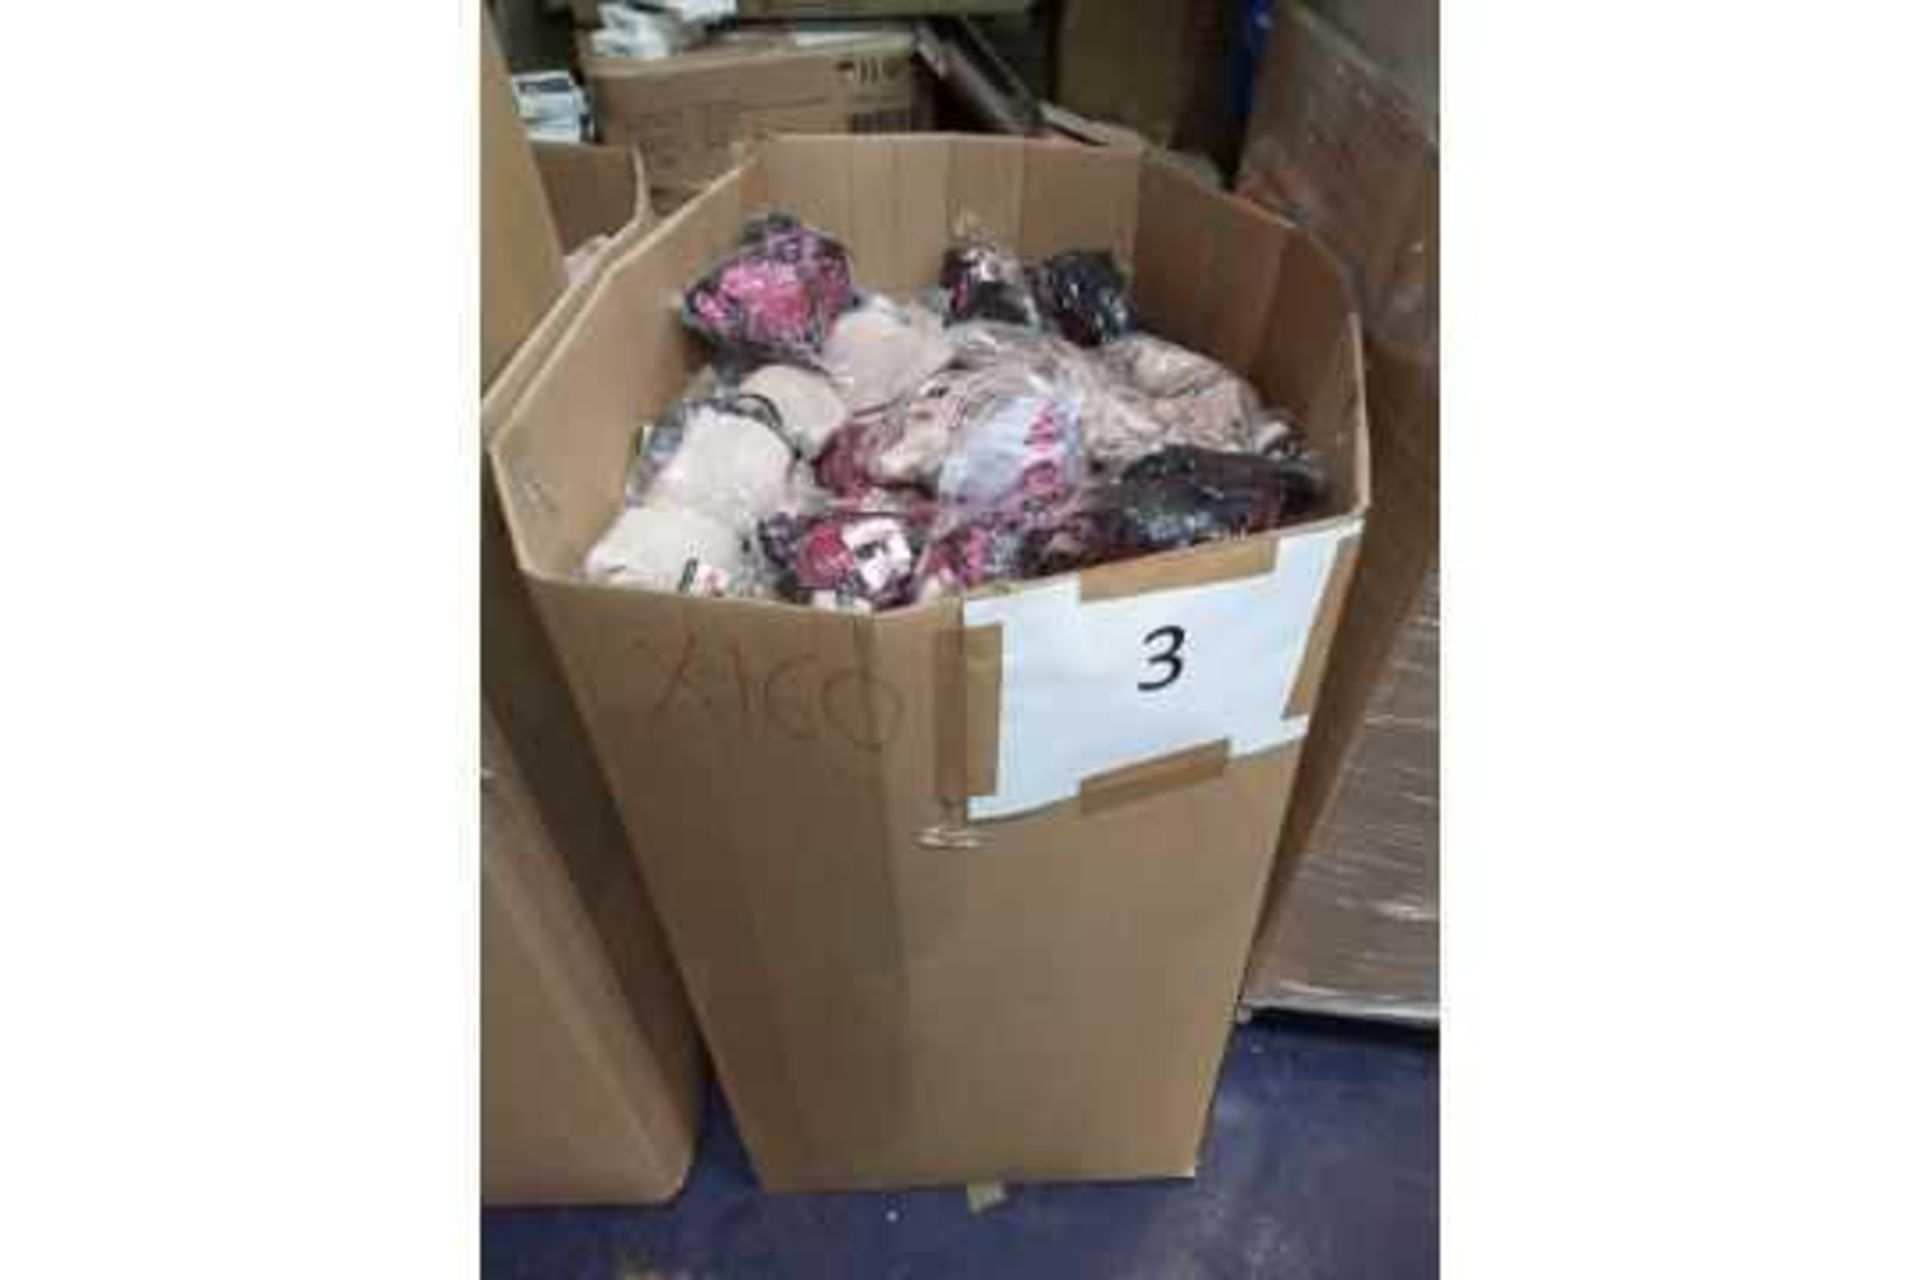 RRP Pallet To Contain 160 Assorted Brand New Packs Of 6/12 Hana Women's Bras